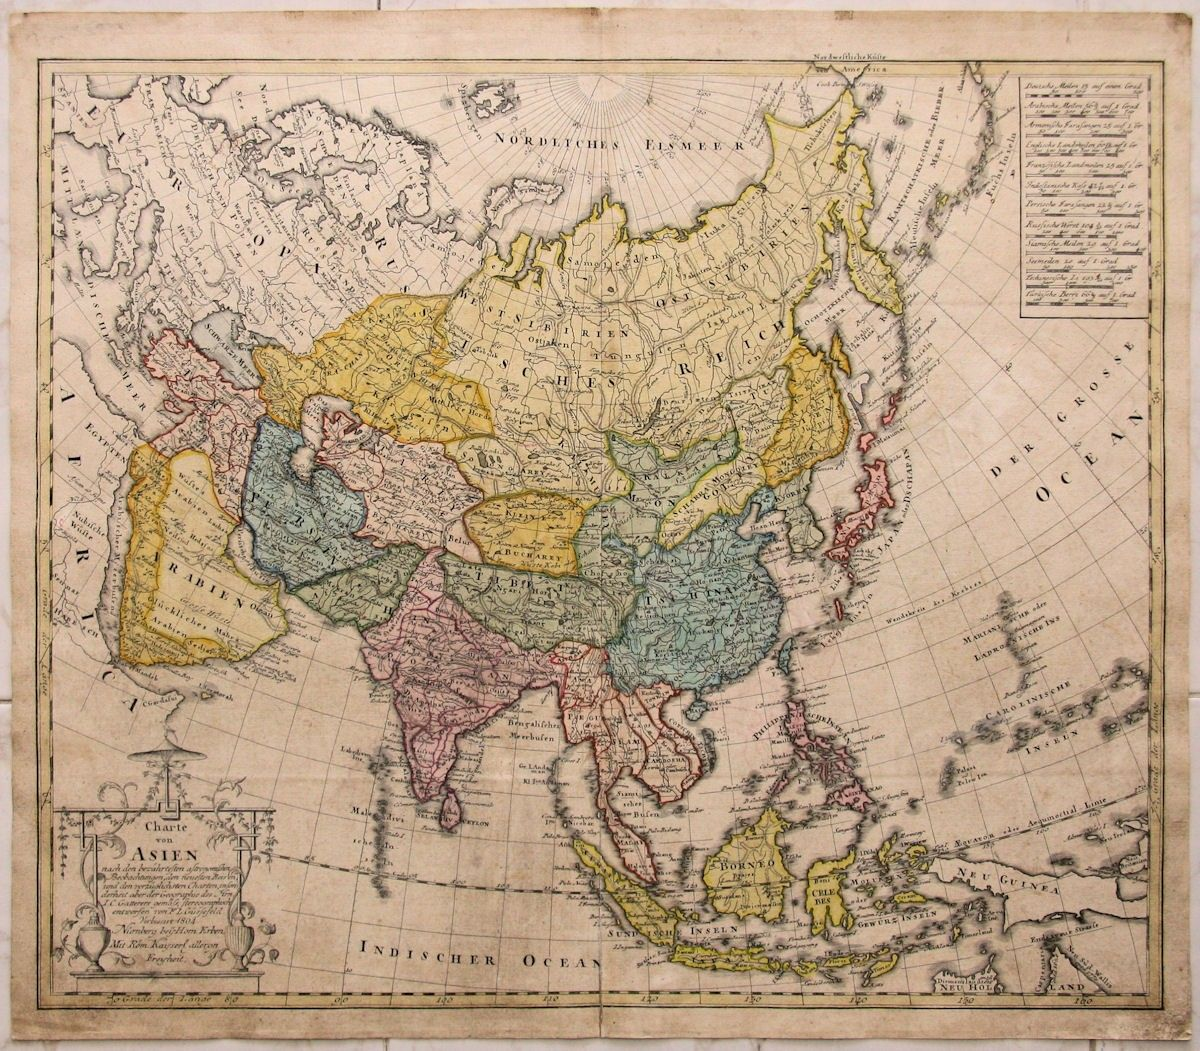 Asia china japan korea india old map homan heirs 1804 asia china japan korea india old map homan heirs 1804 gumiabroncs Image collections